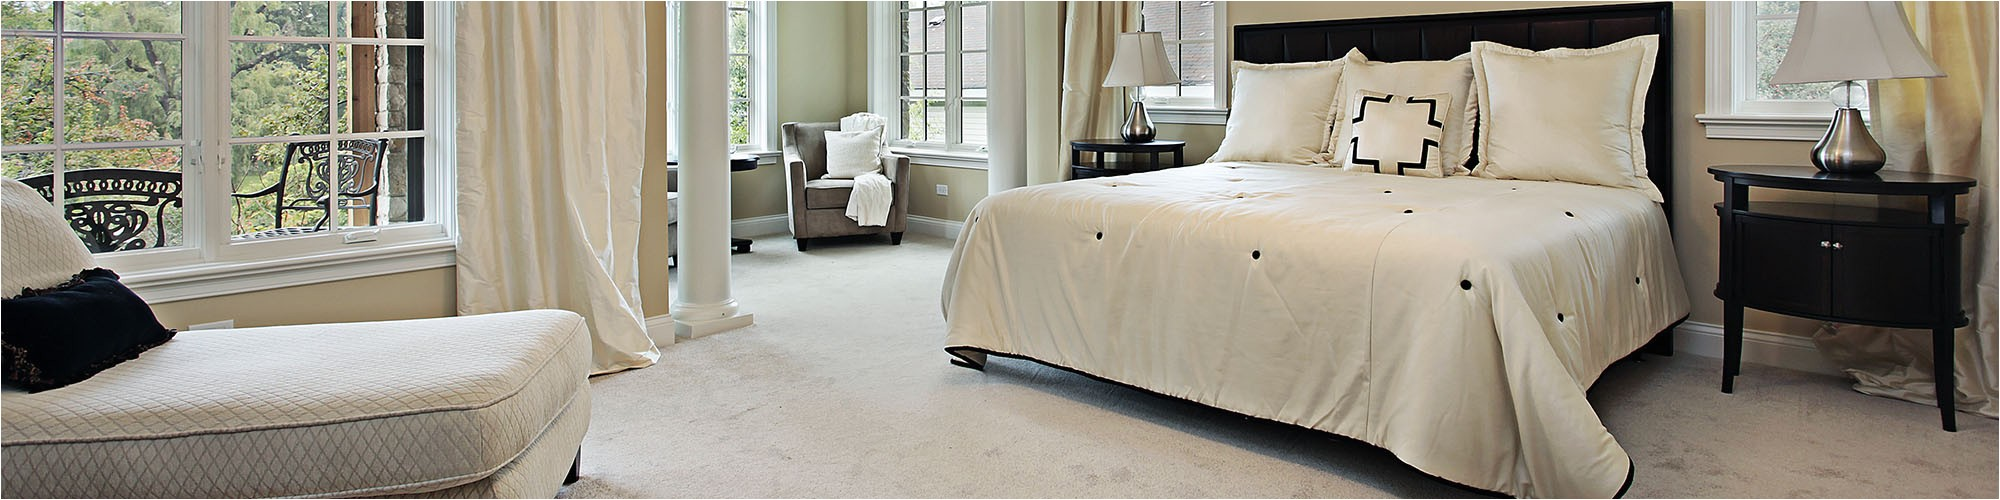 Carpet Installation Cary Nc Carpet Installation In Cary Nc Three Decades Of Experience